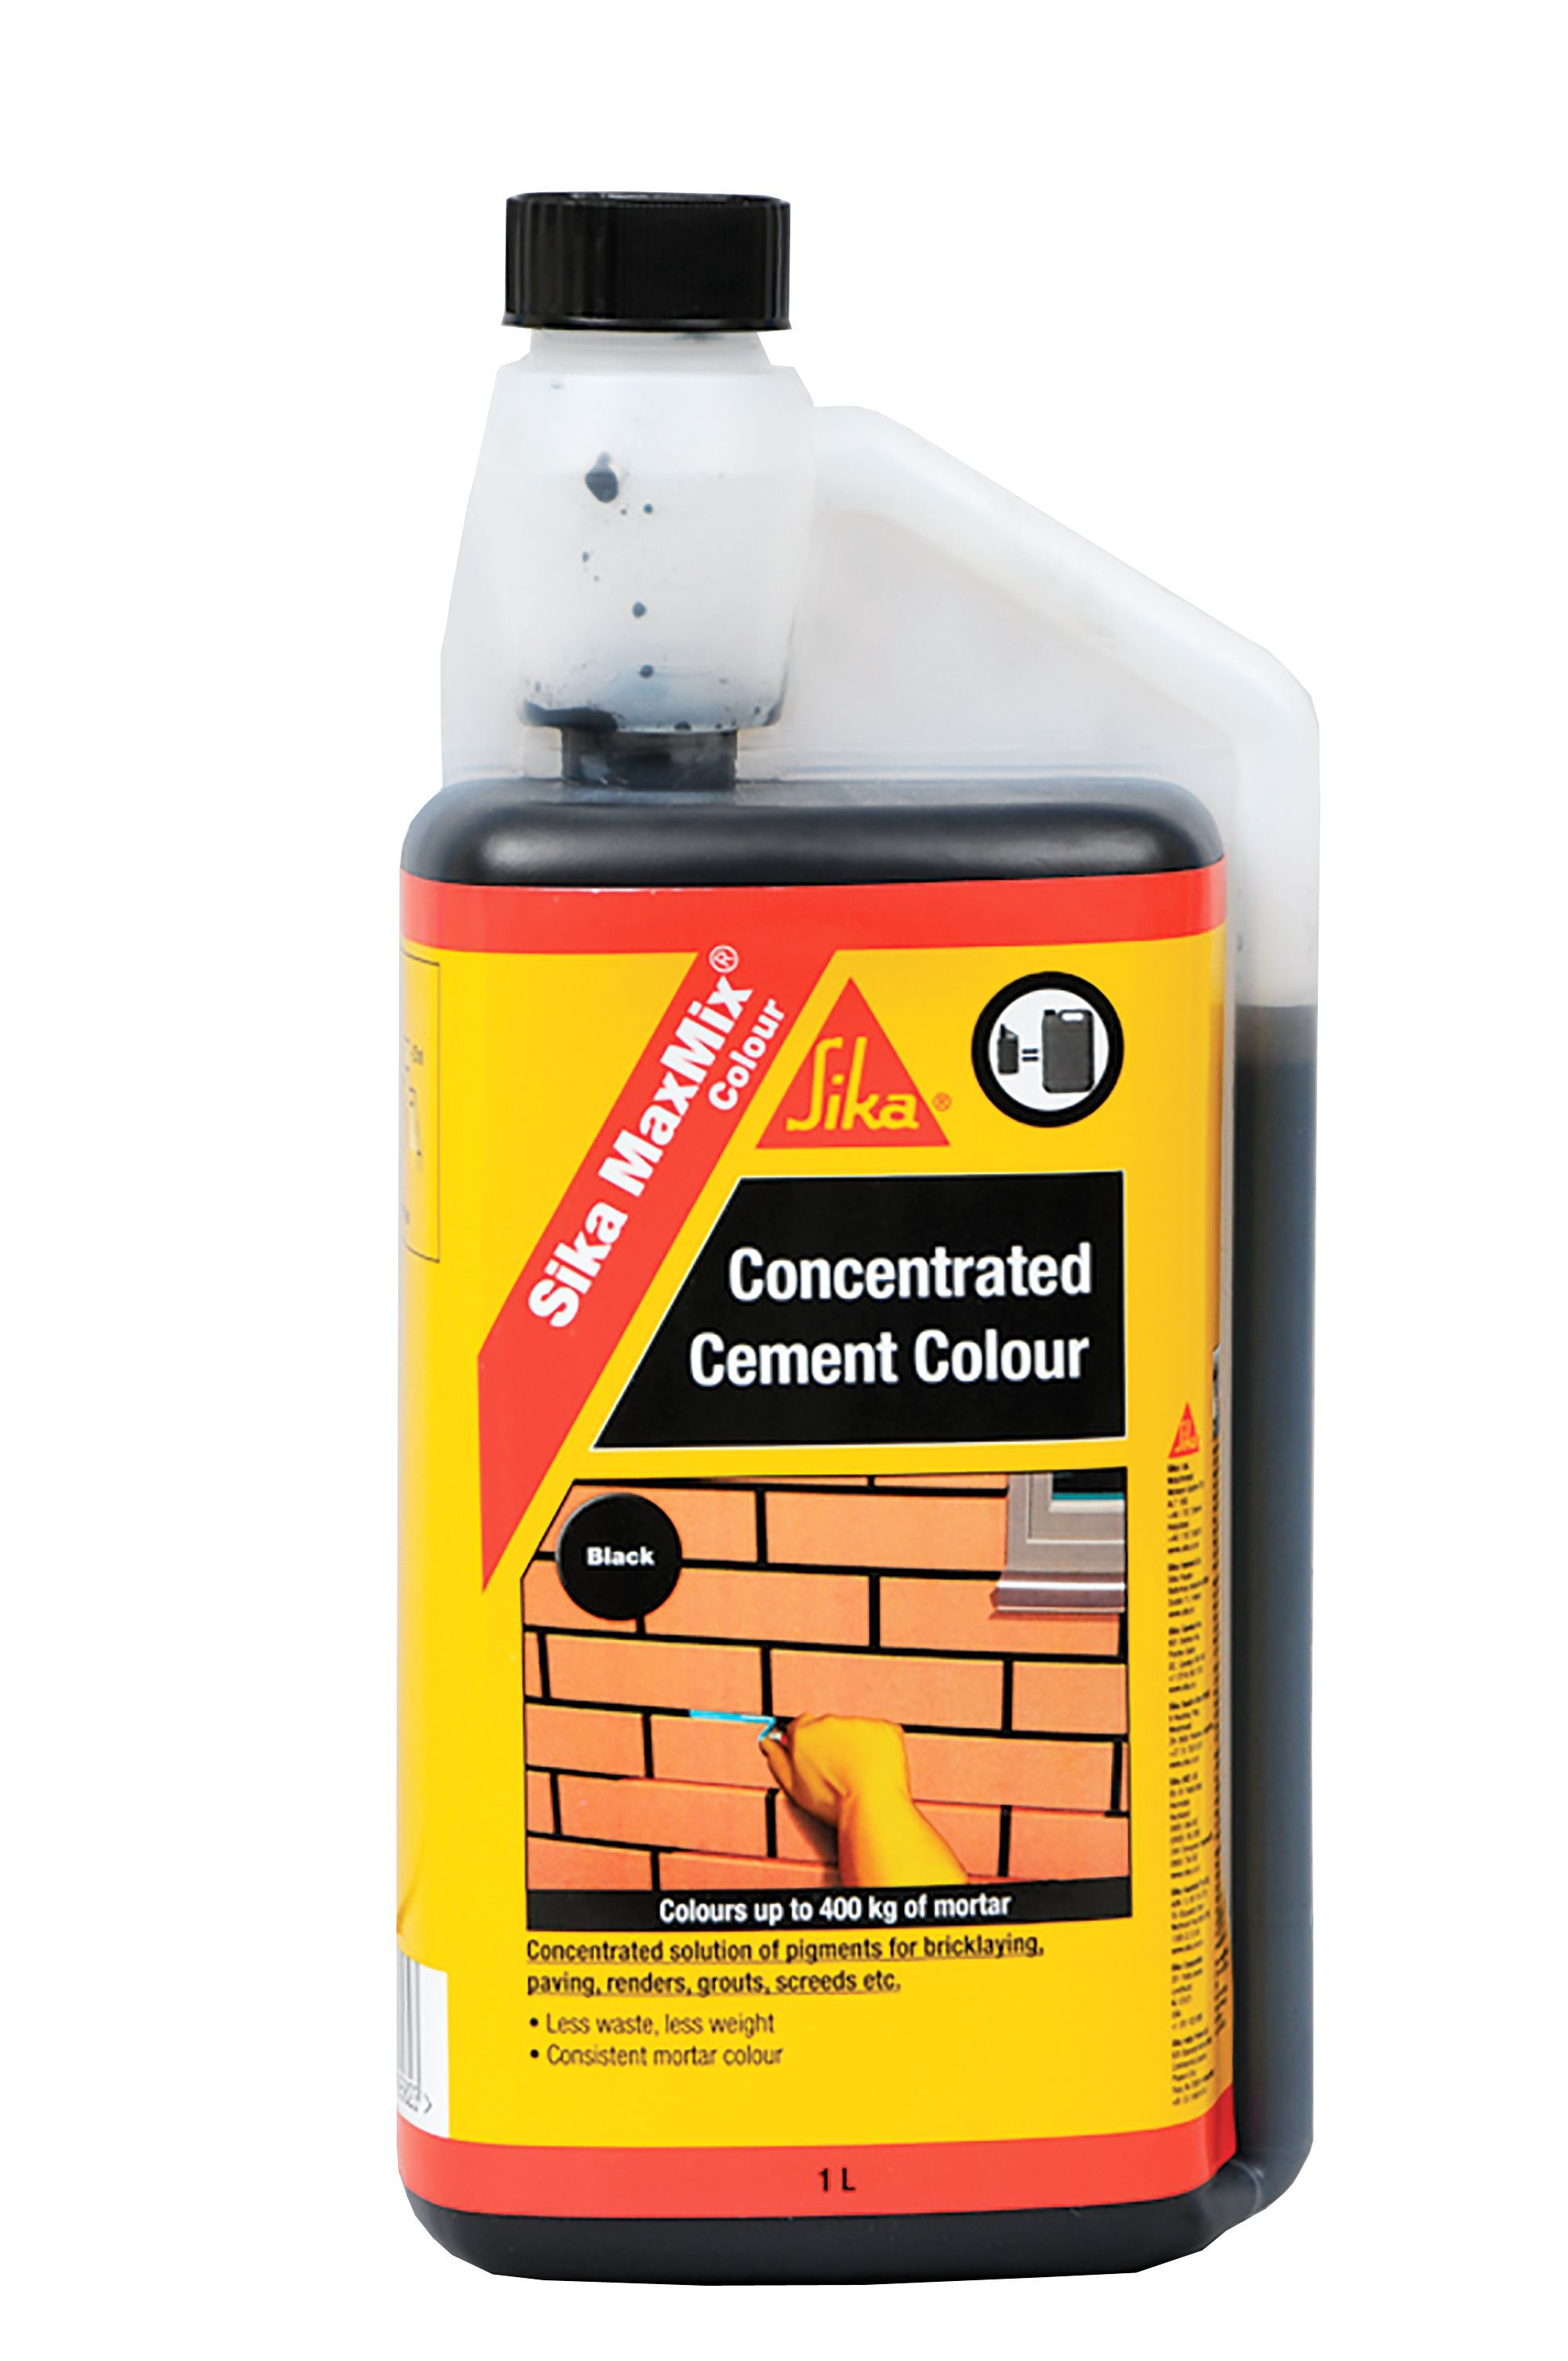 Sika Black Concentrated cement colourant 1000ml | Departments | DIY at B&Q